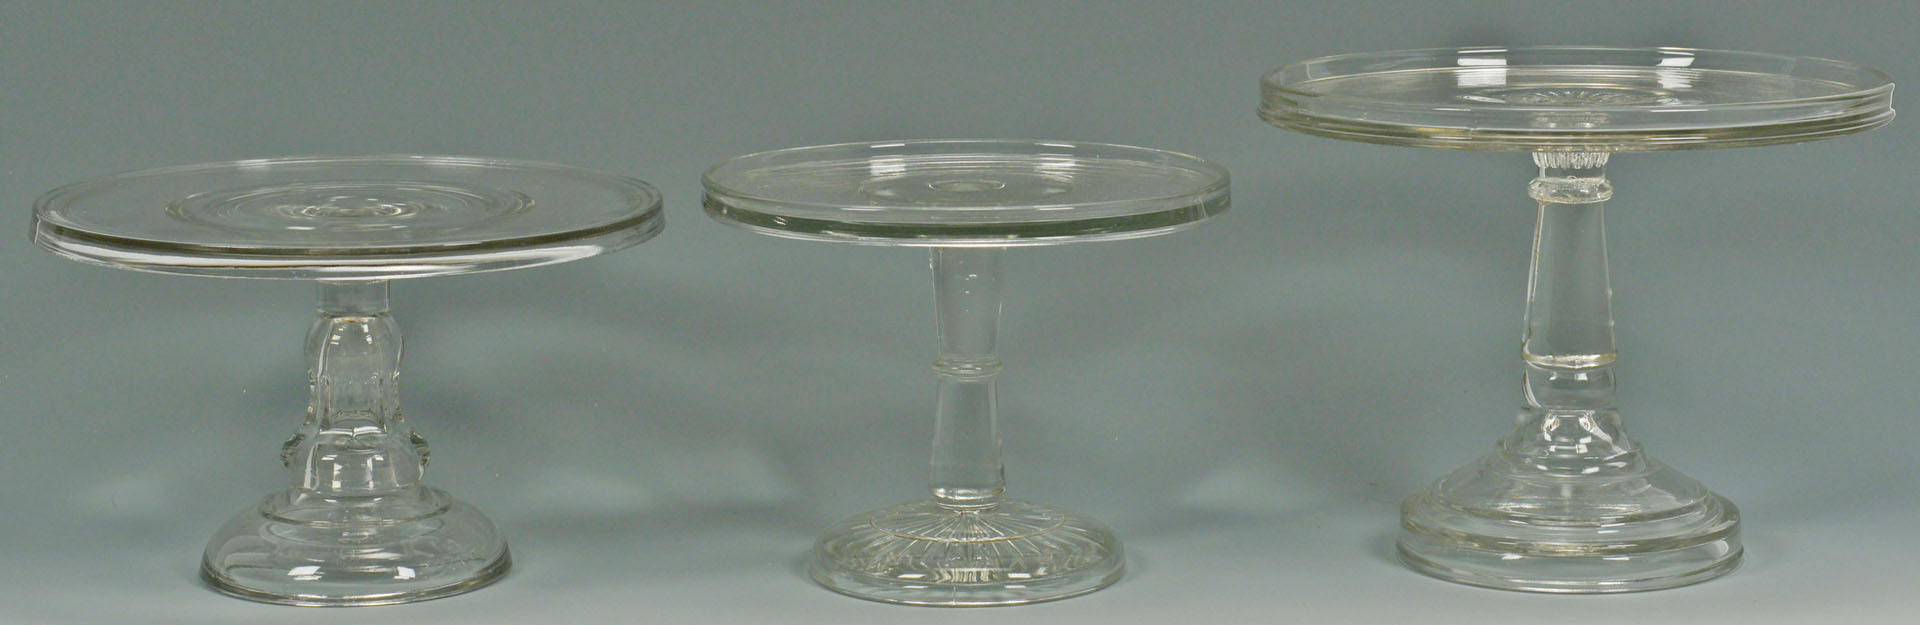 Lot 524: Glass cake stands, dome, whimseys – 8 pcs